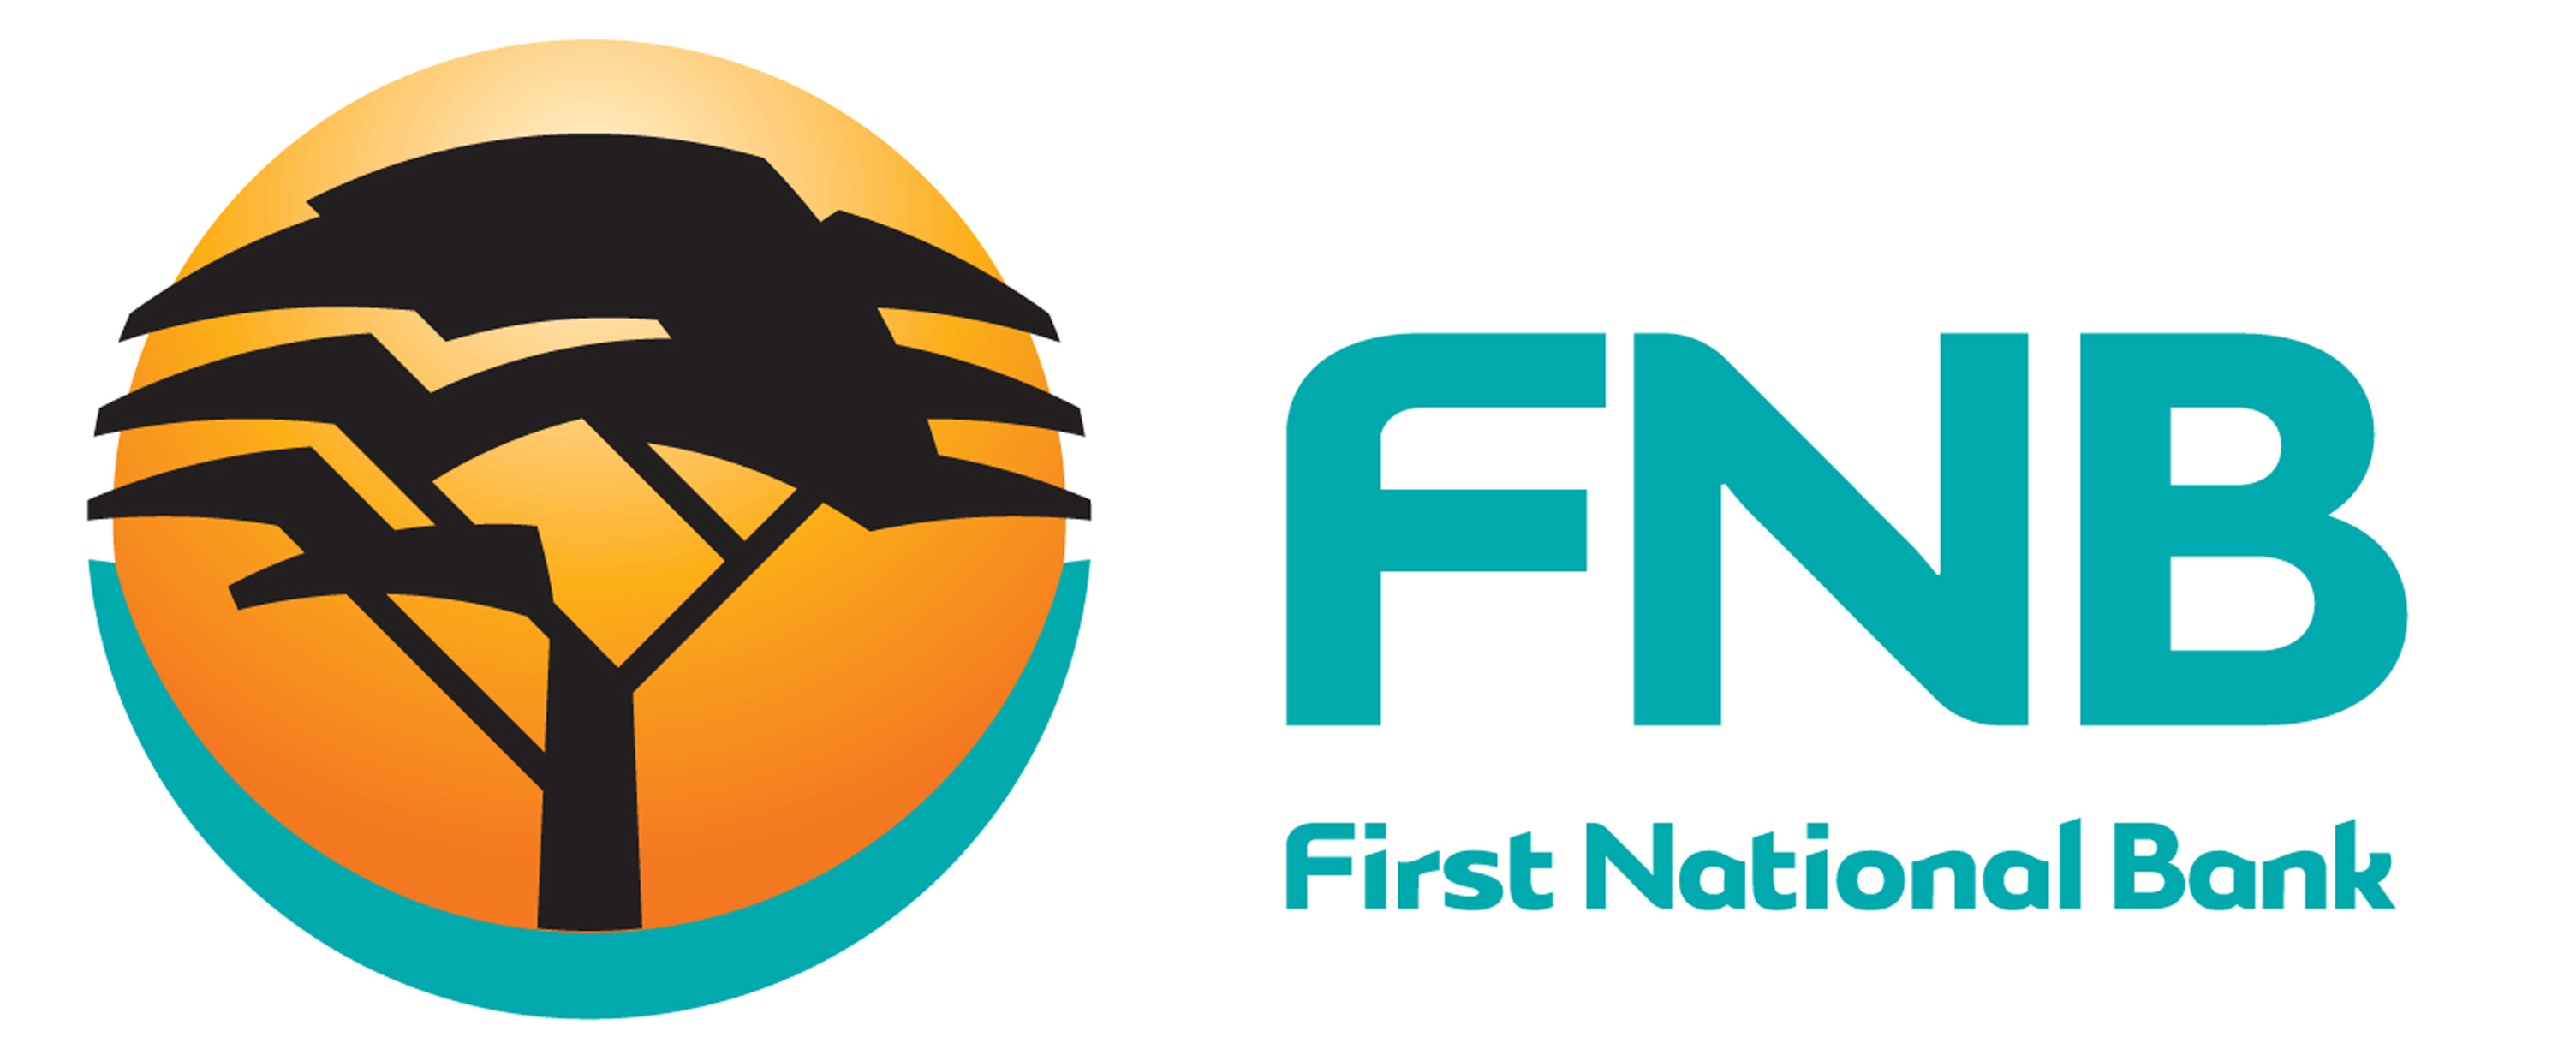 FIRST NATIONAL BANK (FNB) TO ENTER GHANA & NIGERIA'S RETAIL BANKING